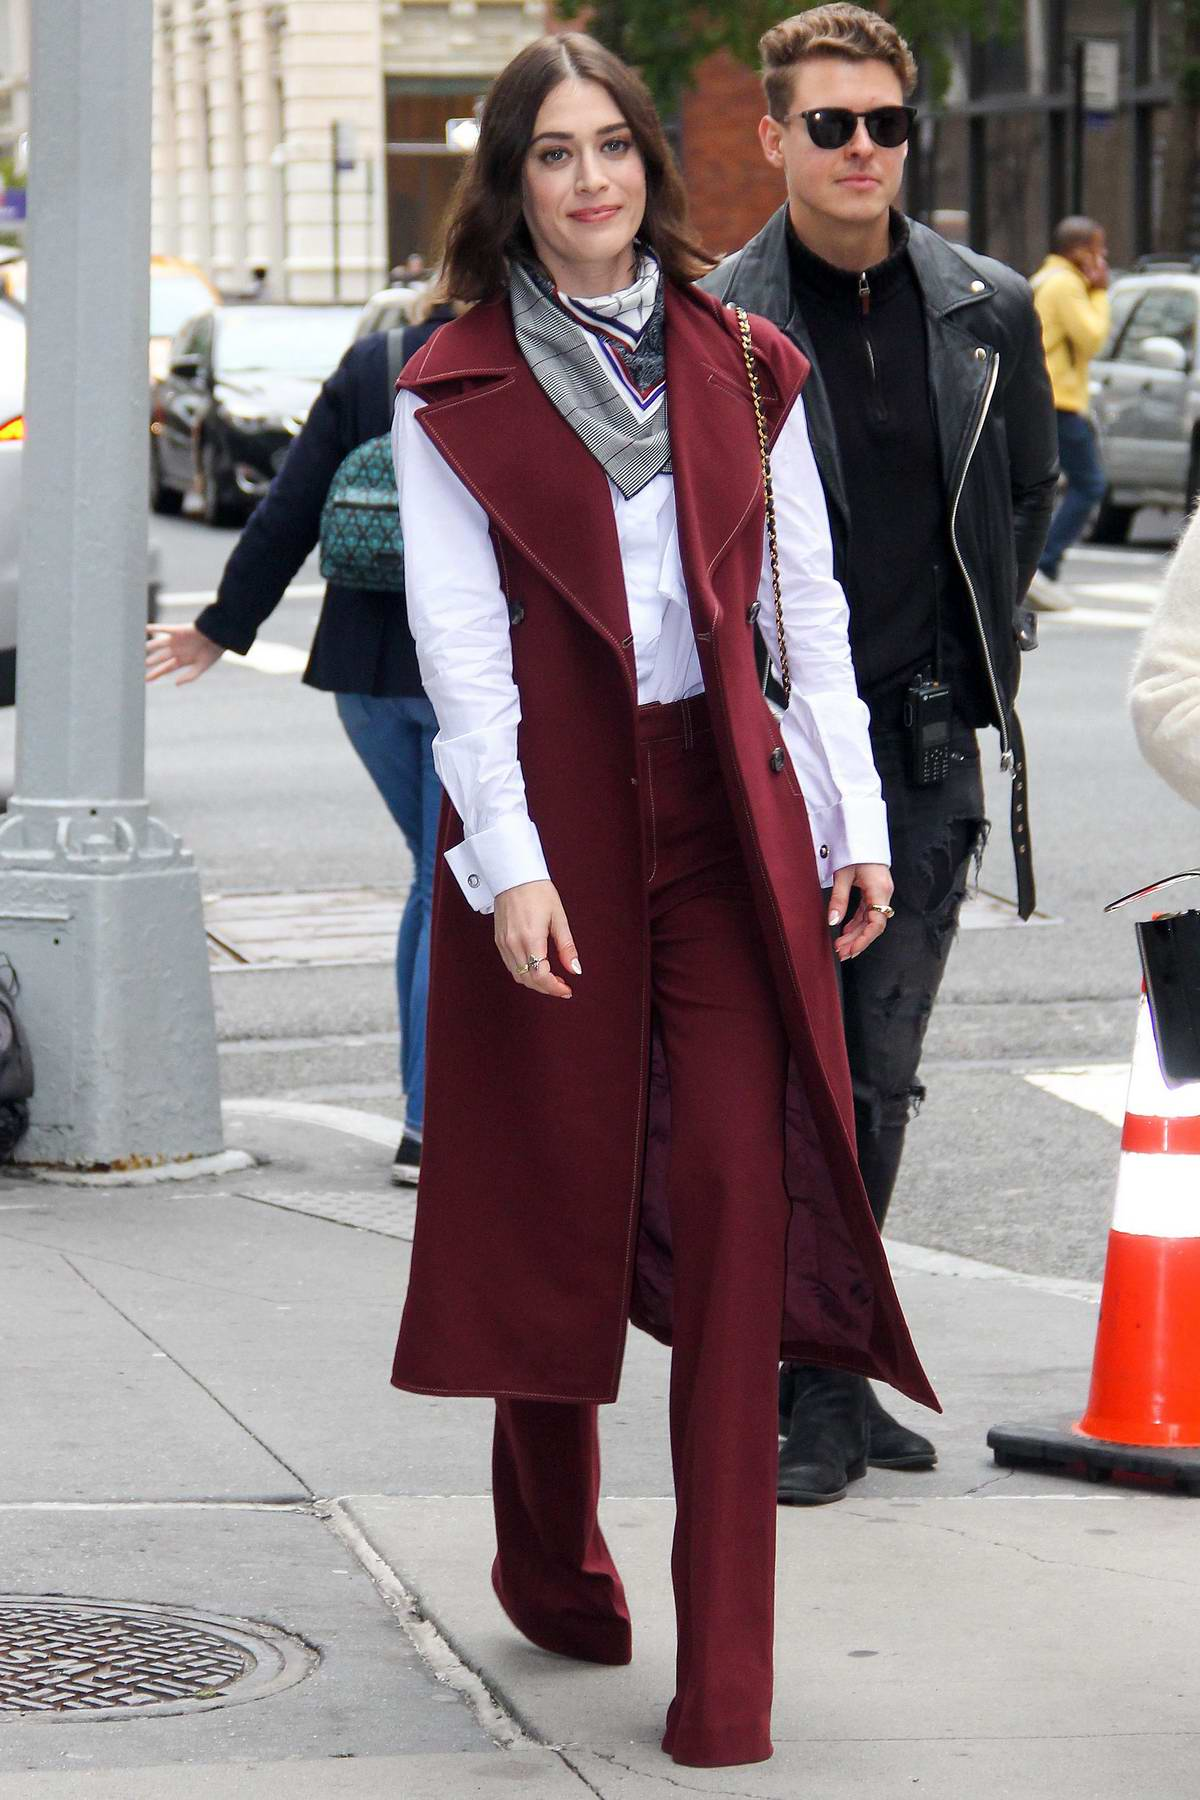 Lizzy Caplan looks great in a maroon and white ensemble while visiting Build Speaker Series in New York City